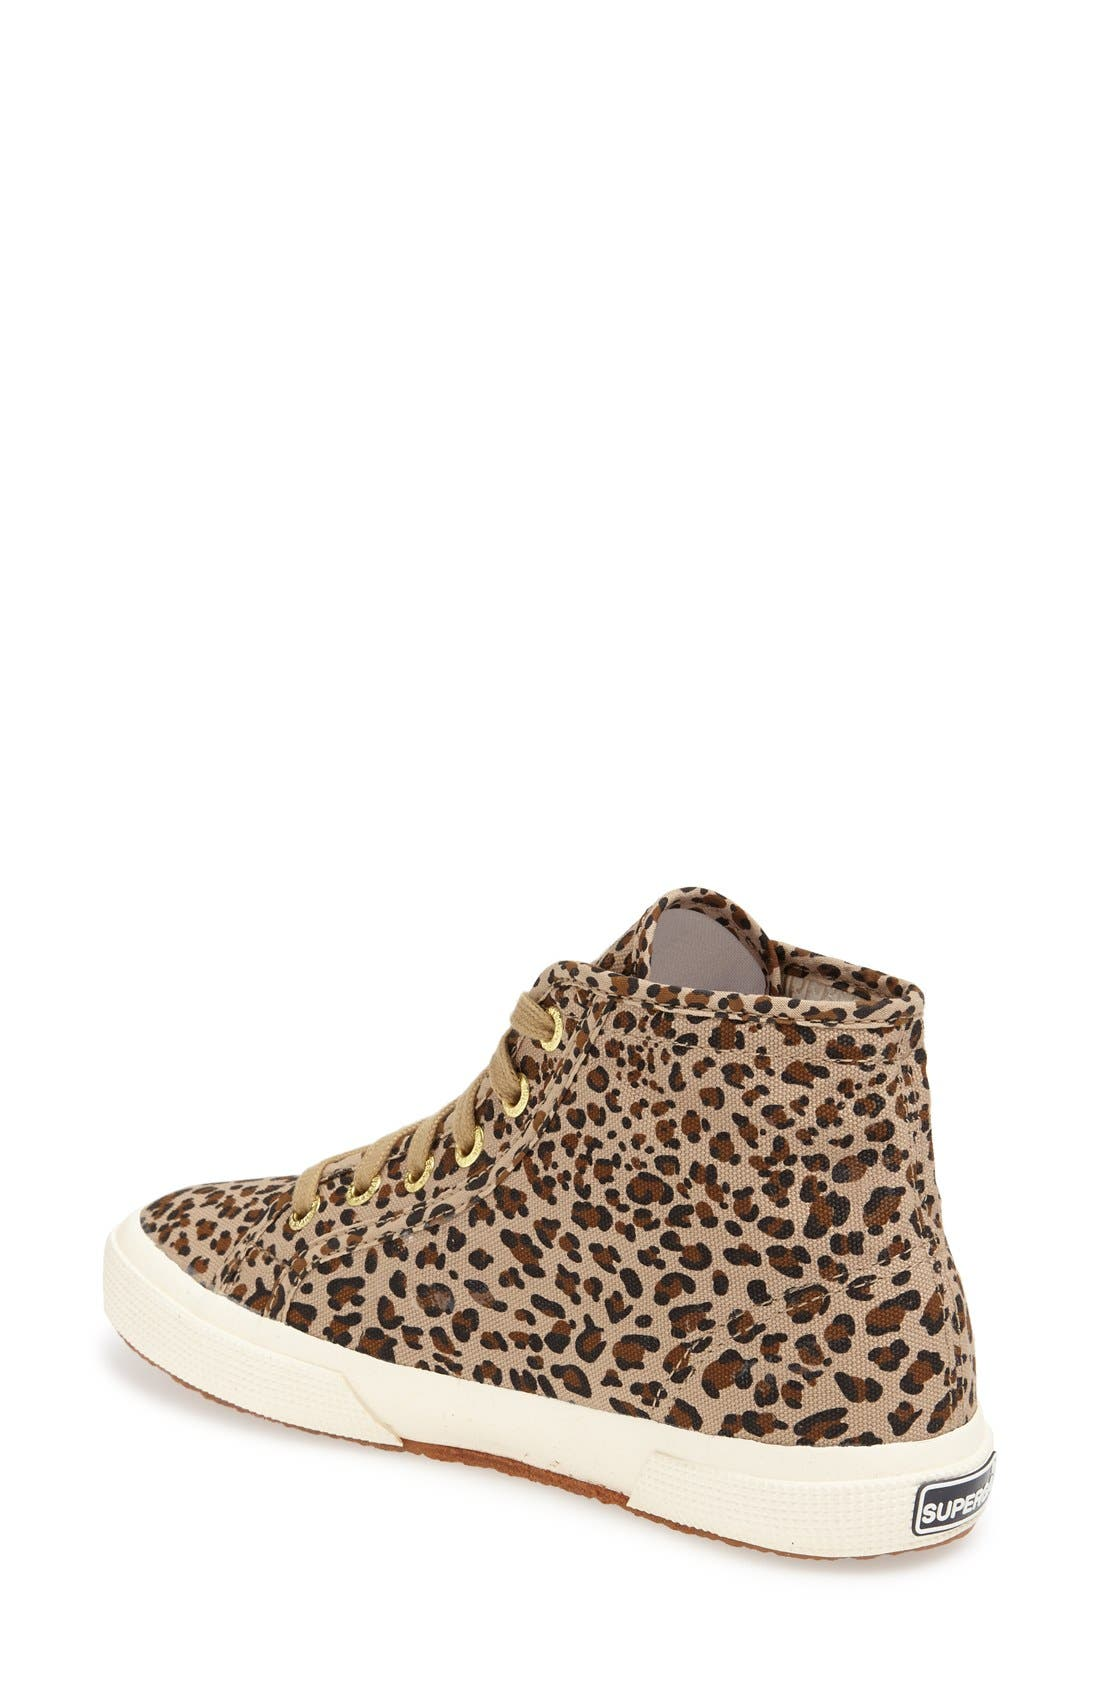 Alternate Image 2  - Superga 'Leo' High Top Sneaker (Women)